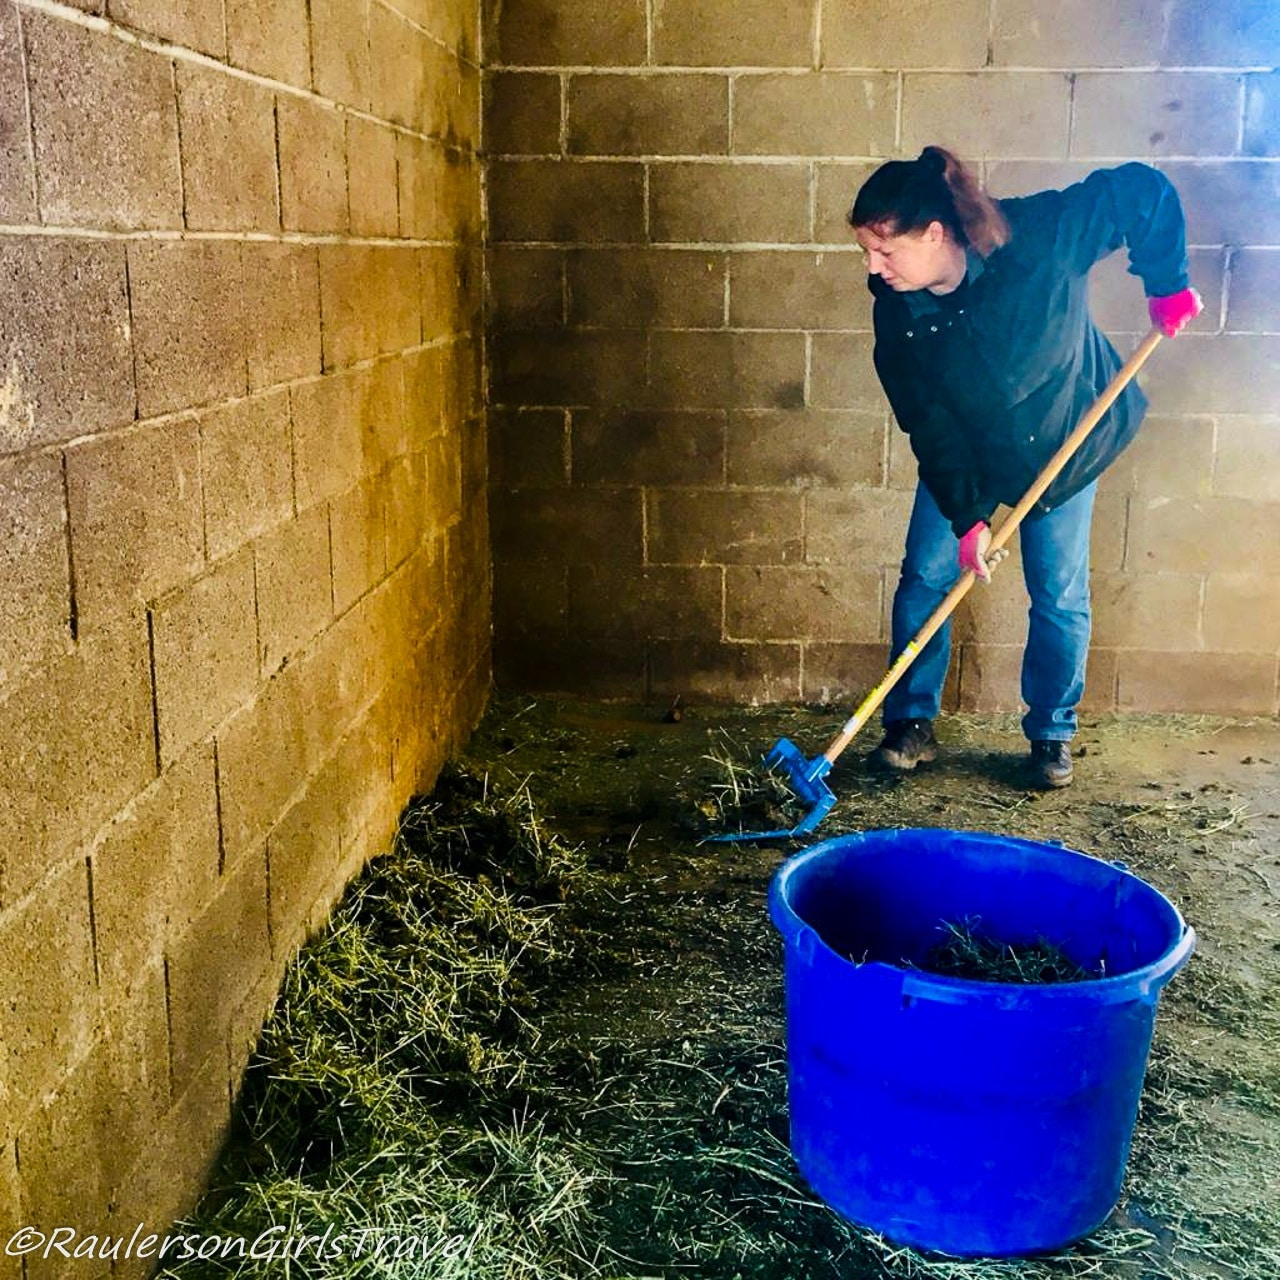 Heather Mucking out the Stalls